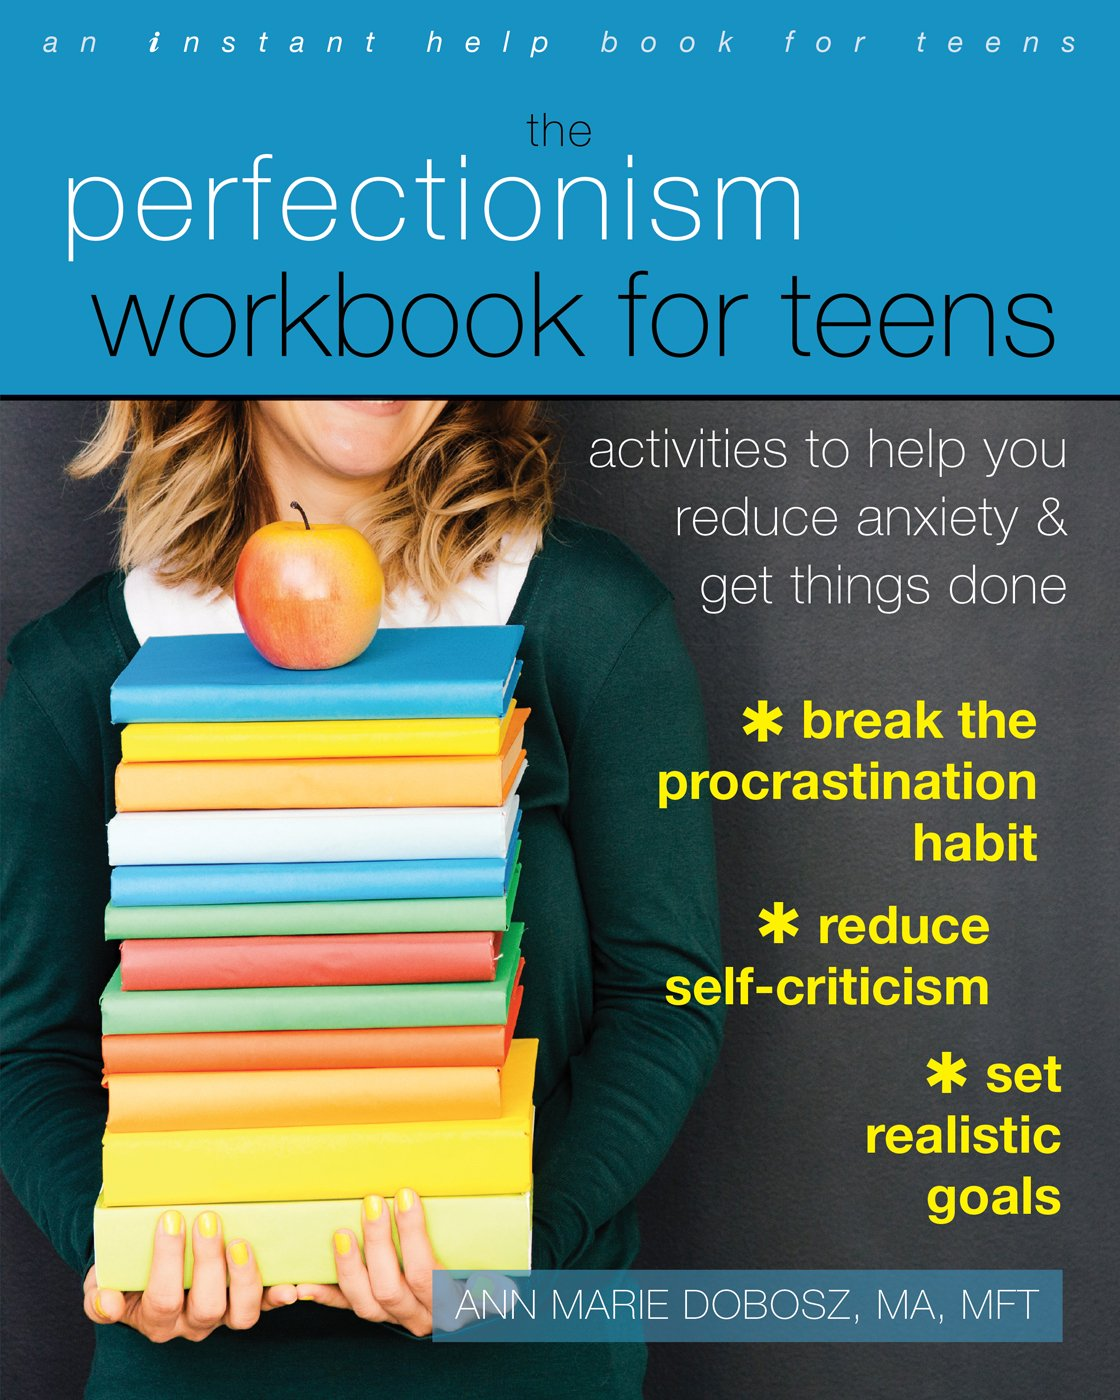 Amazon.com: The Perfectionism Workbook for Teens: Activities to ...